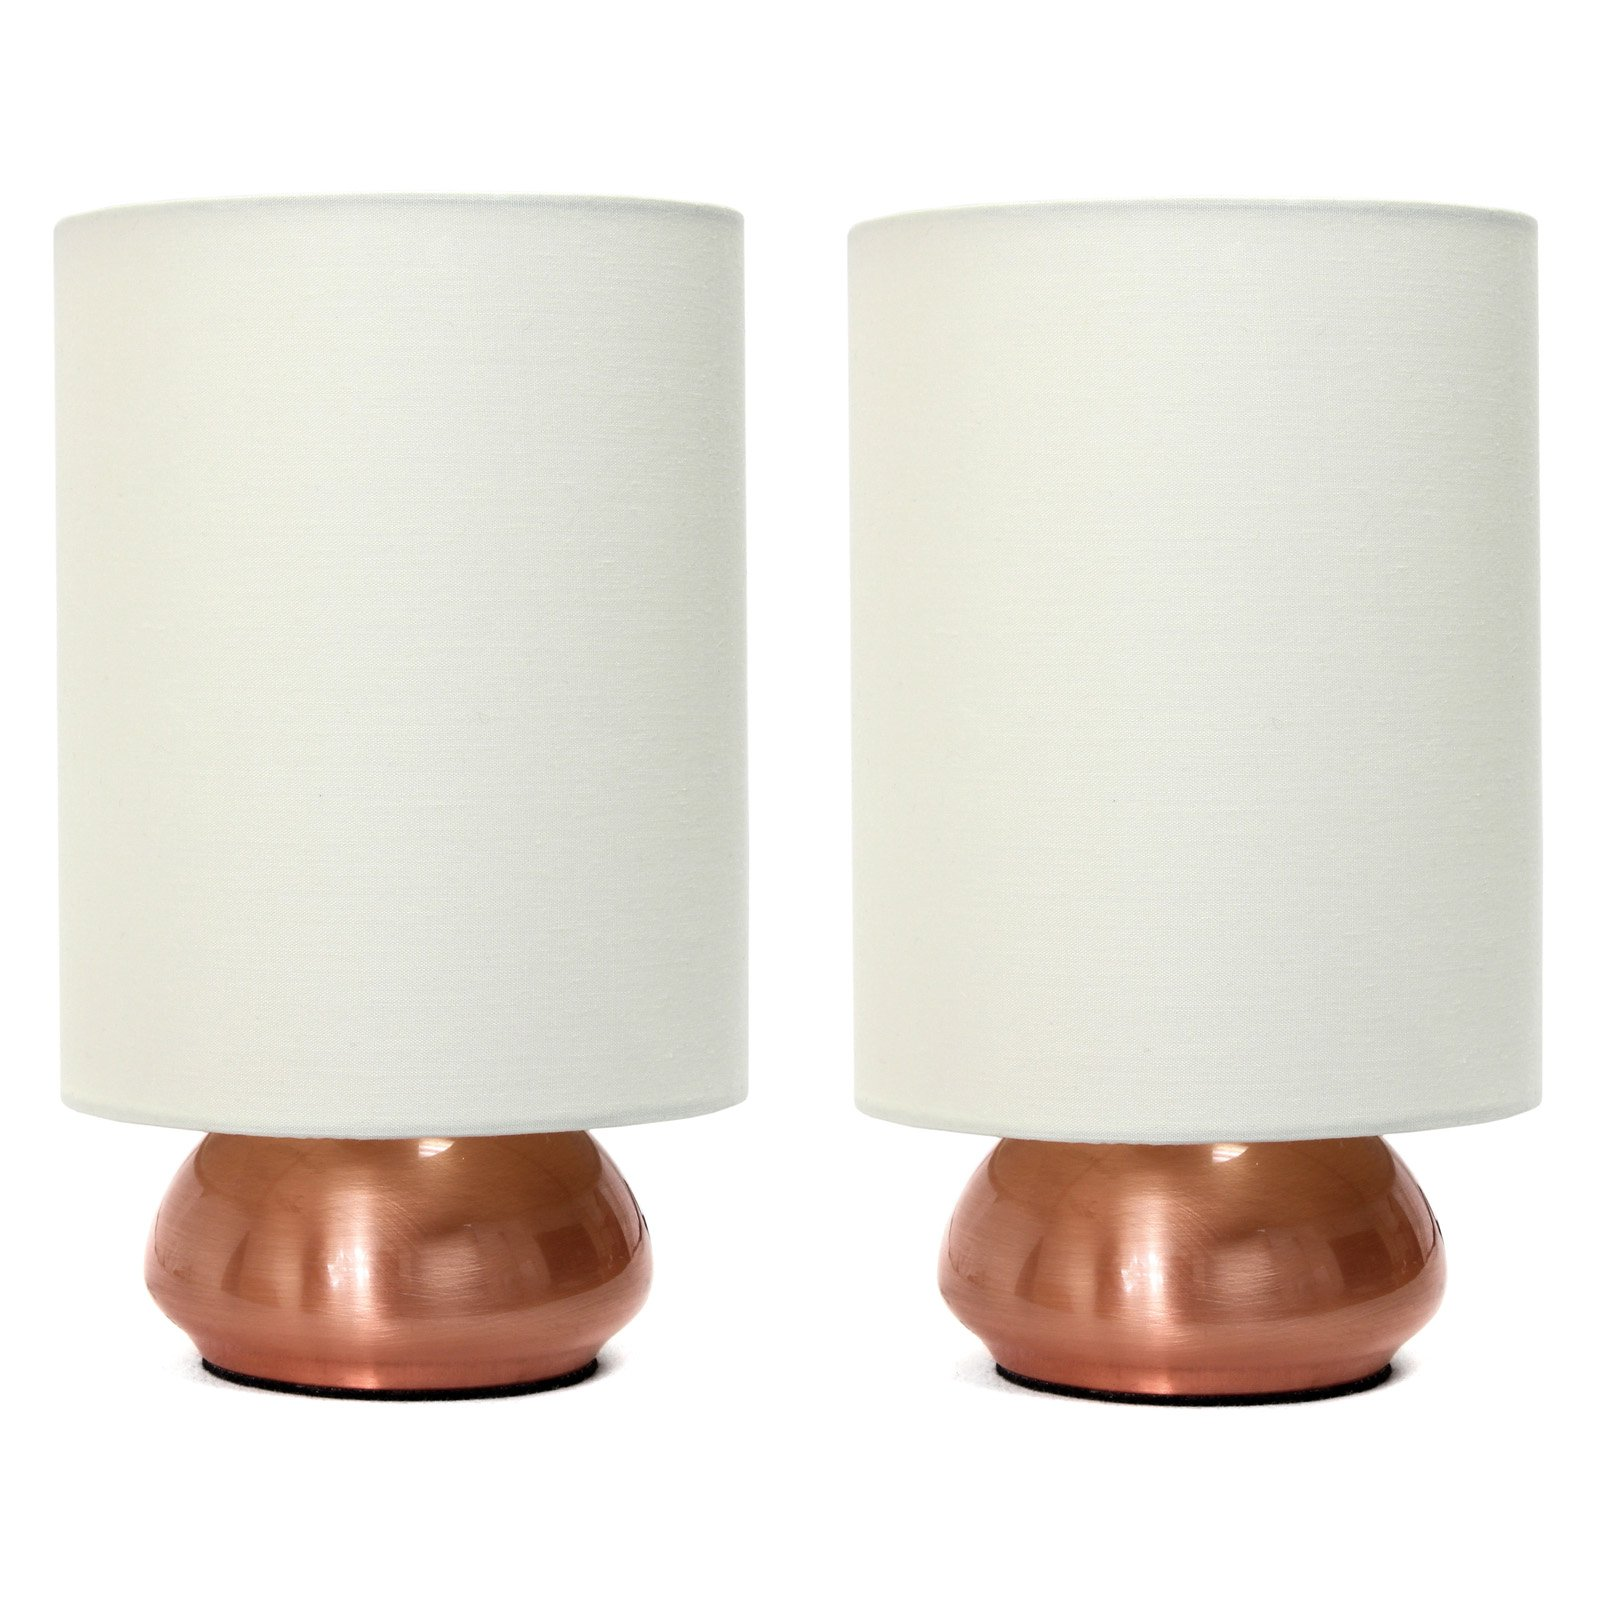 Simple Designs Gemini Mini Touch Table Lamp Set with Fabric Shades by All the Rages